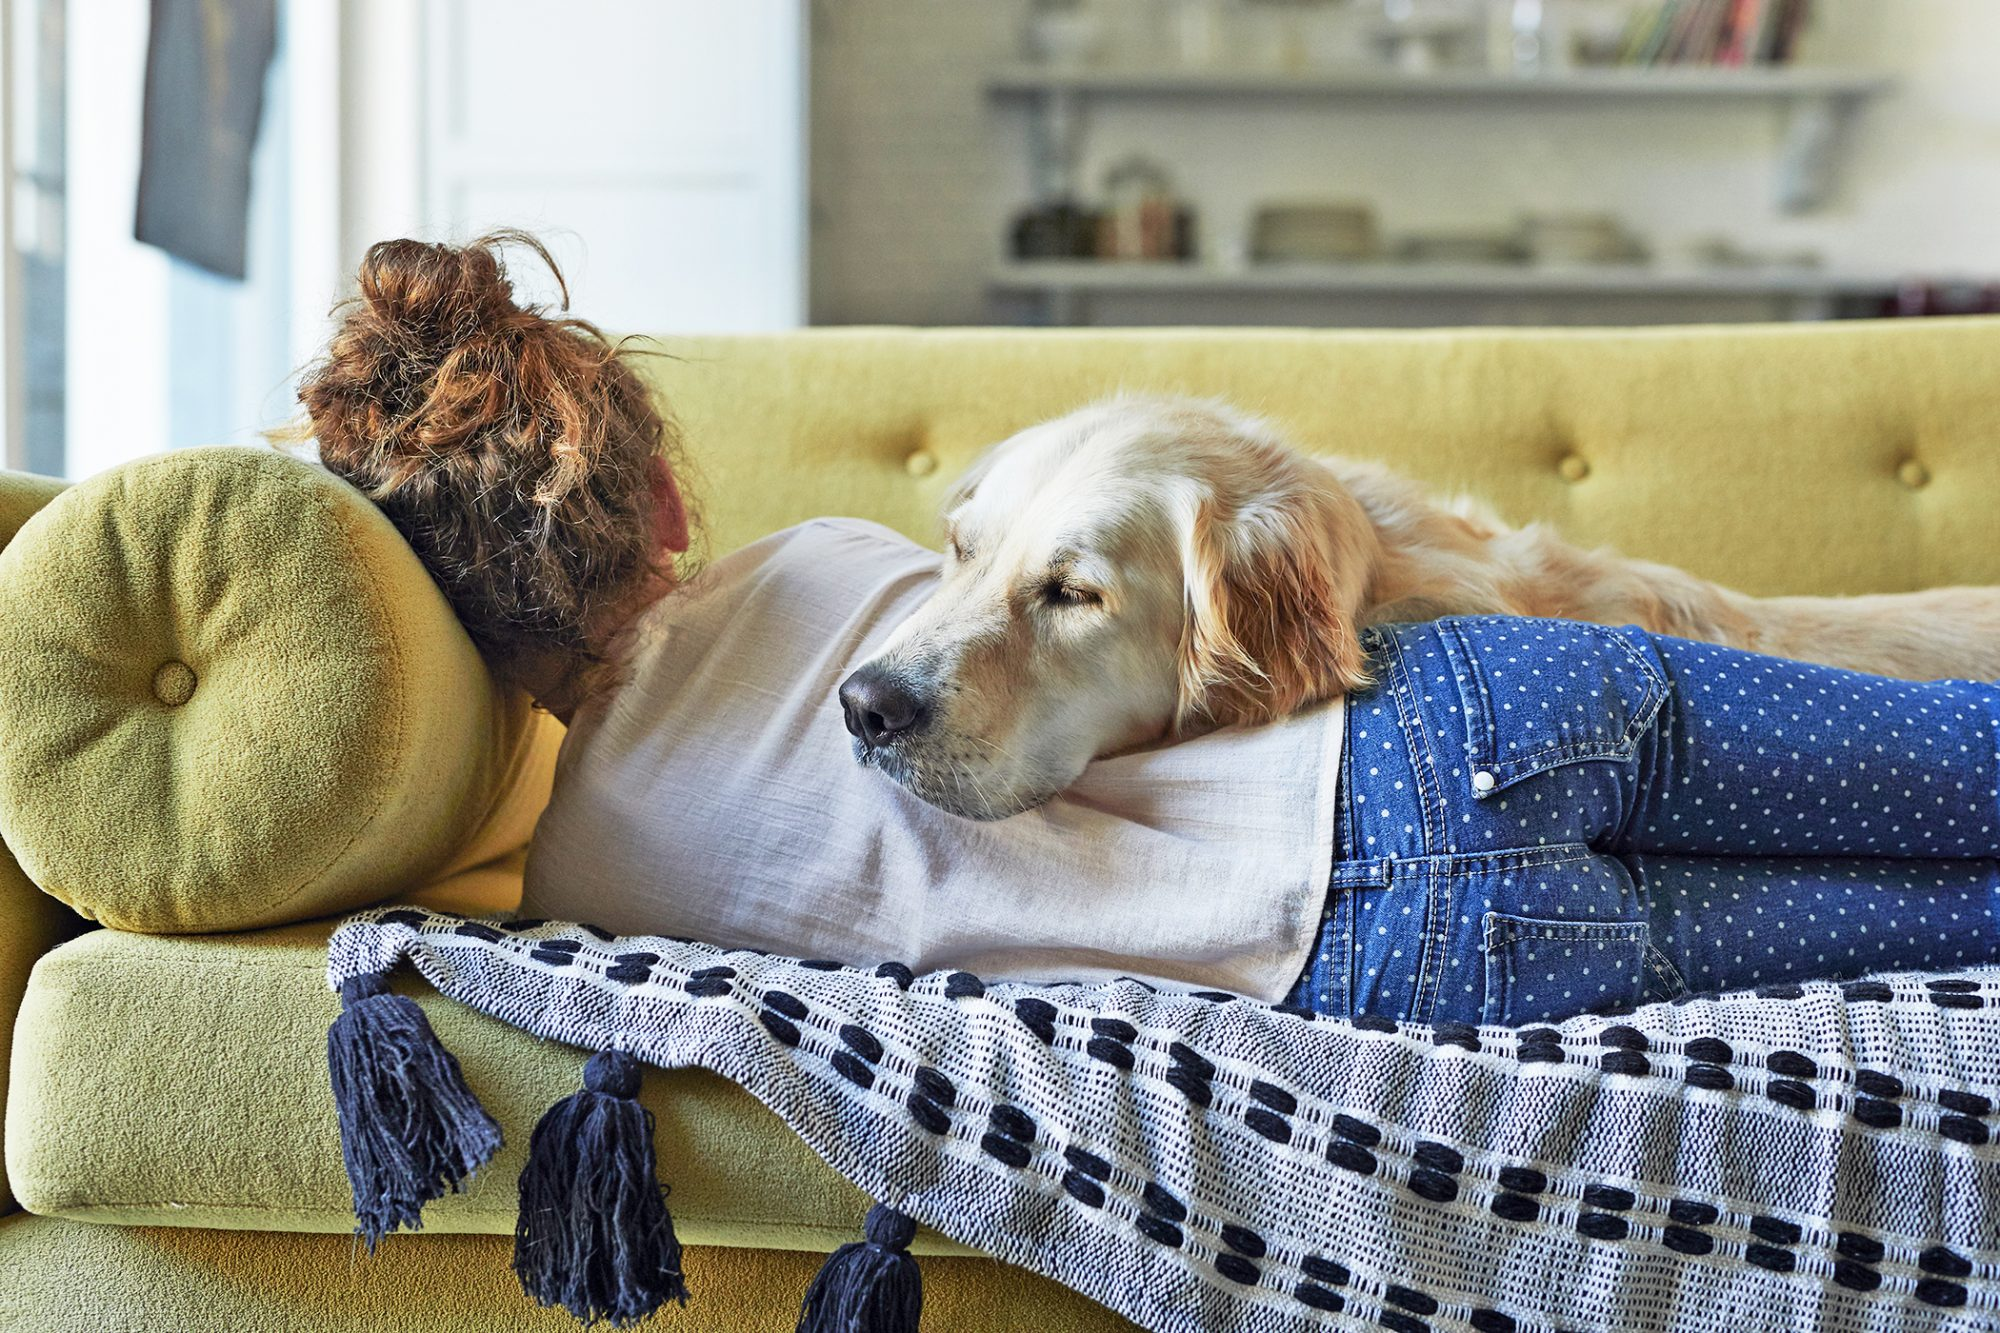 young girl sleeping on a yellow couch with her Golden Retriever resting his head on her back